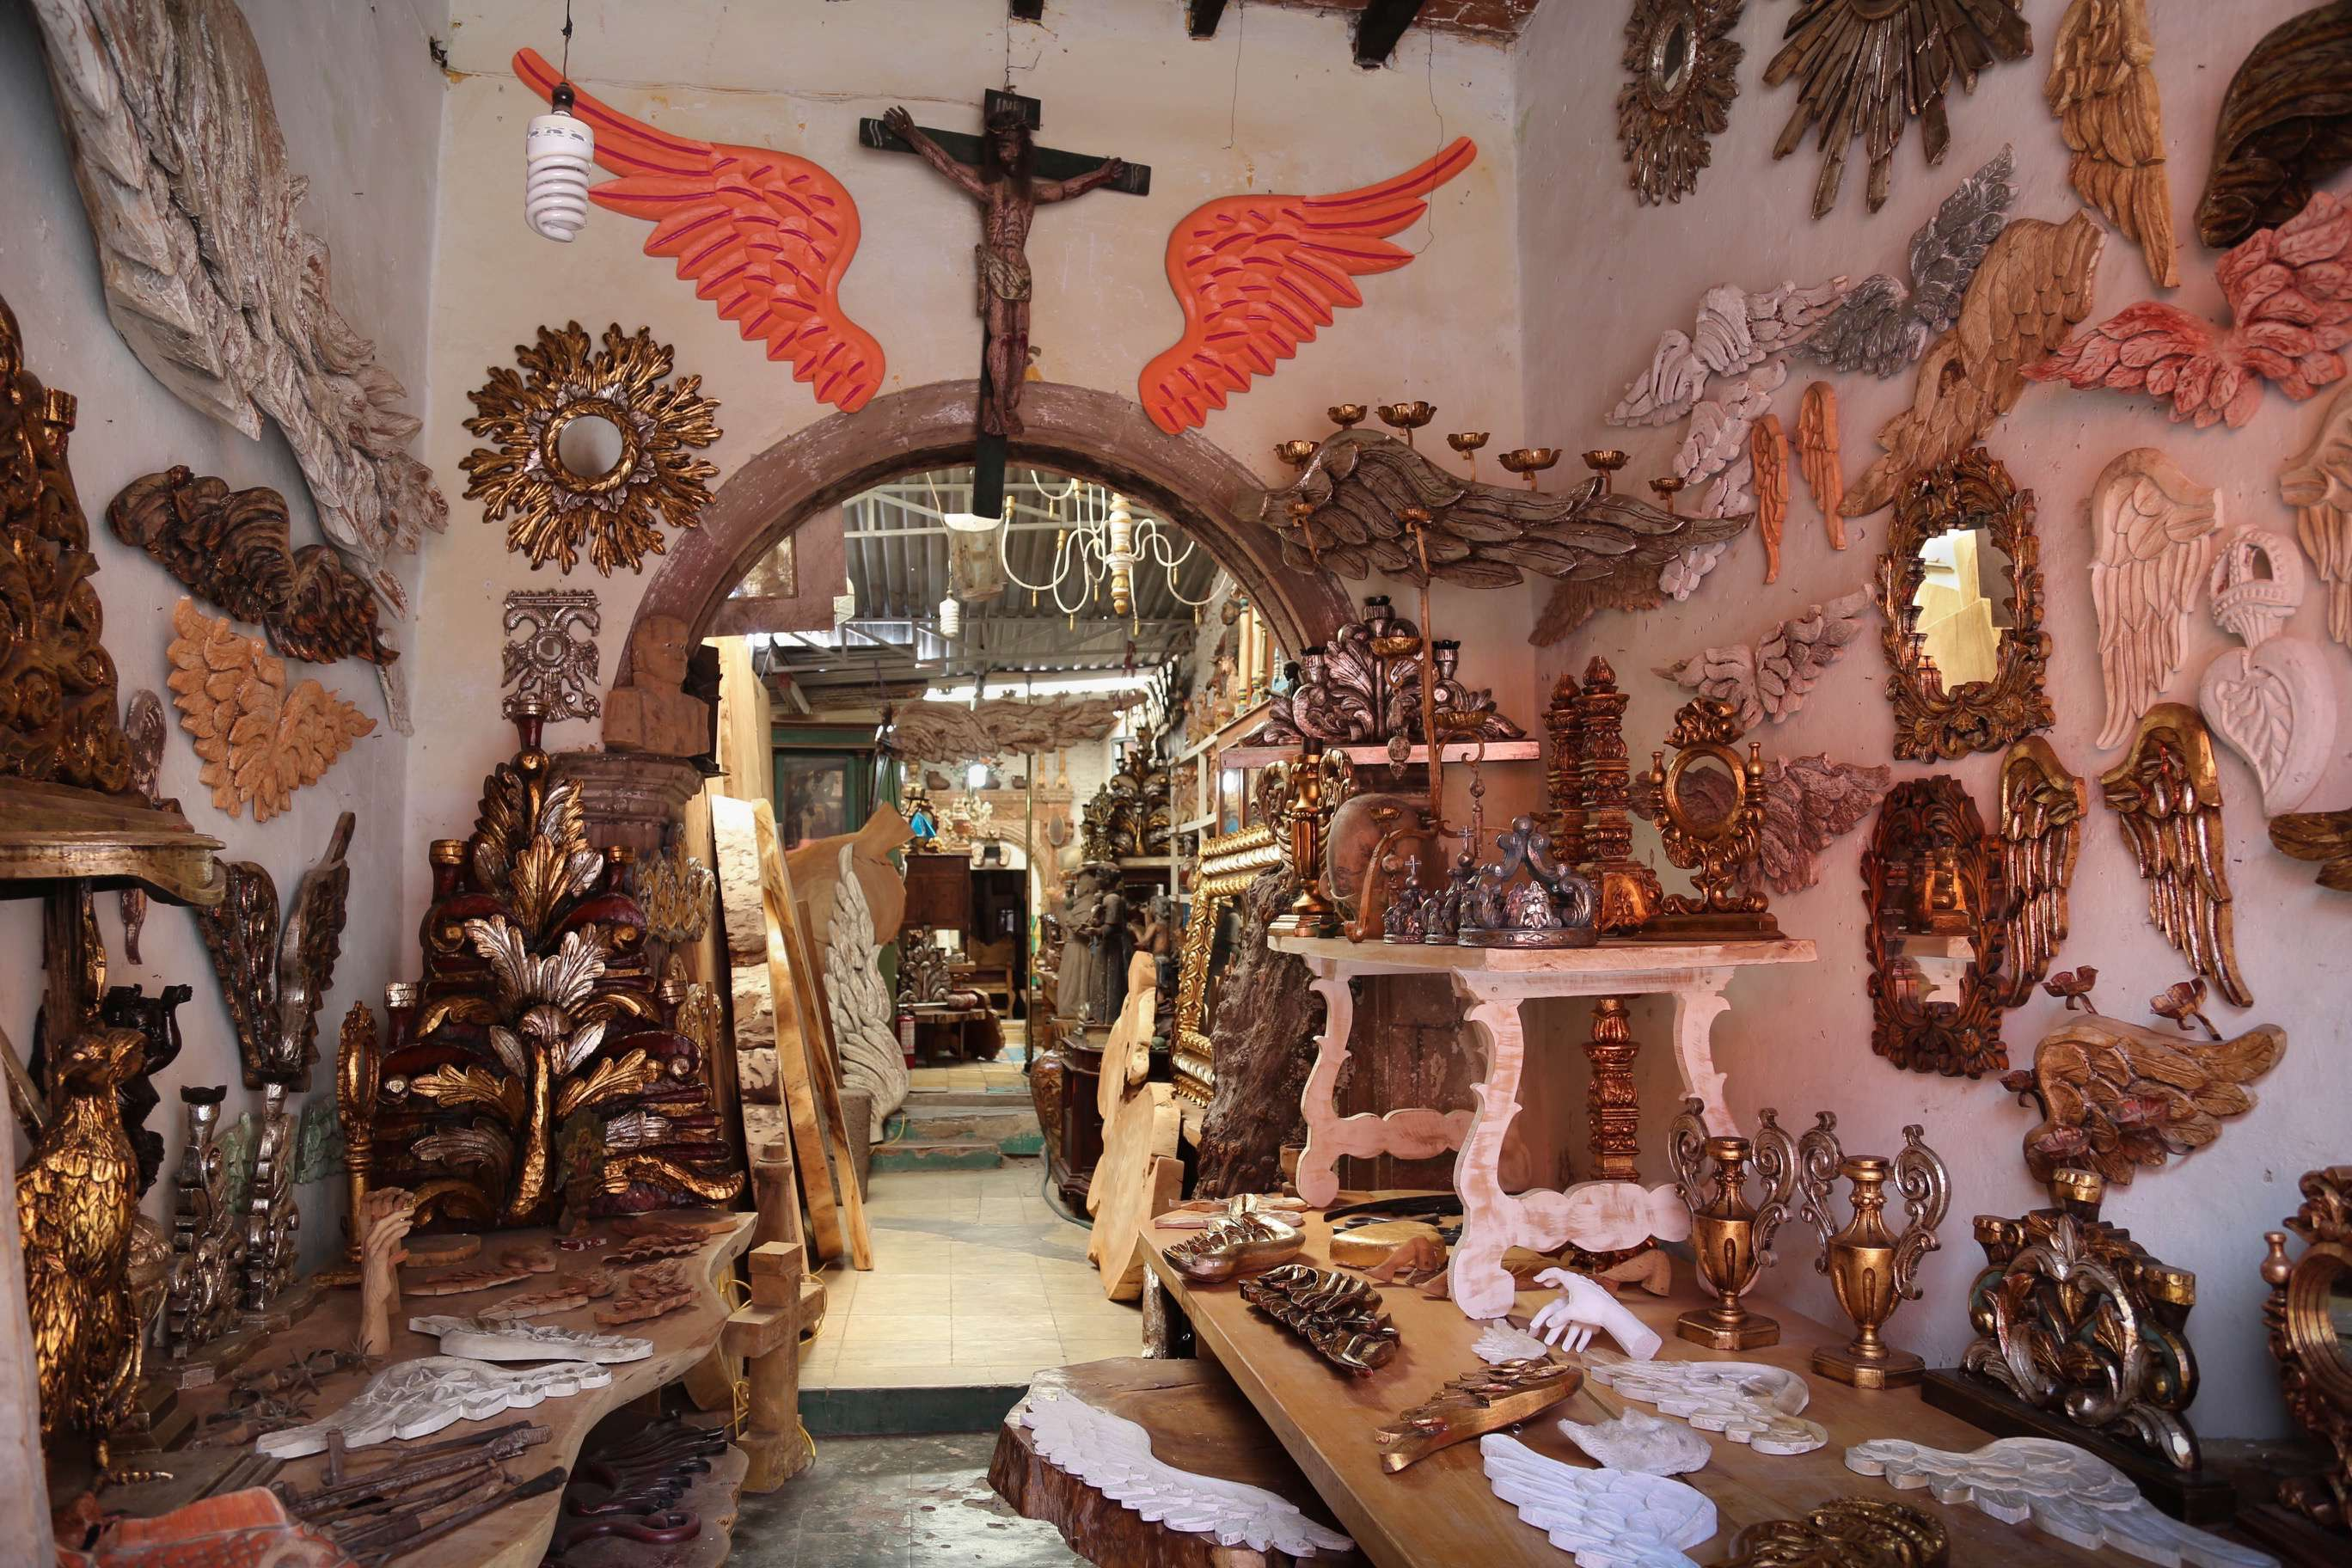 The door of this shop is a bit plain, but inside lies a menagerie of choices, much of it religious.